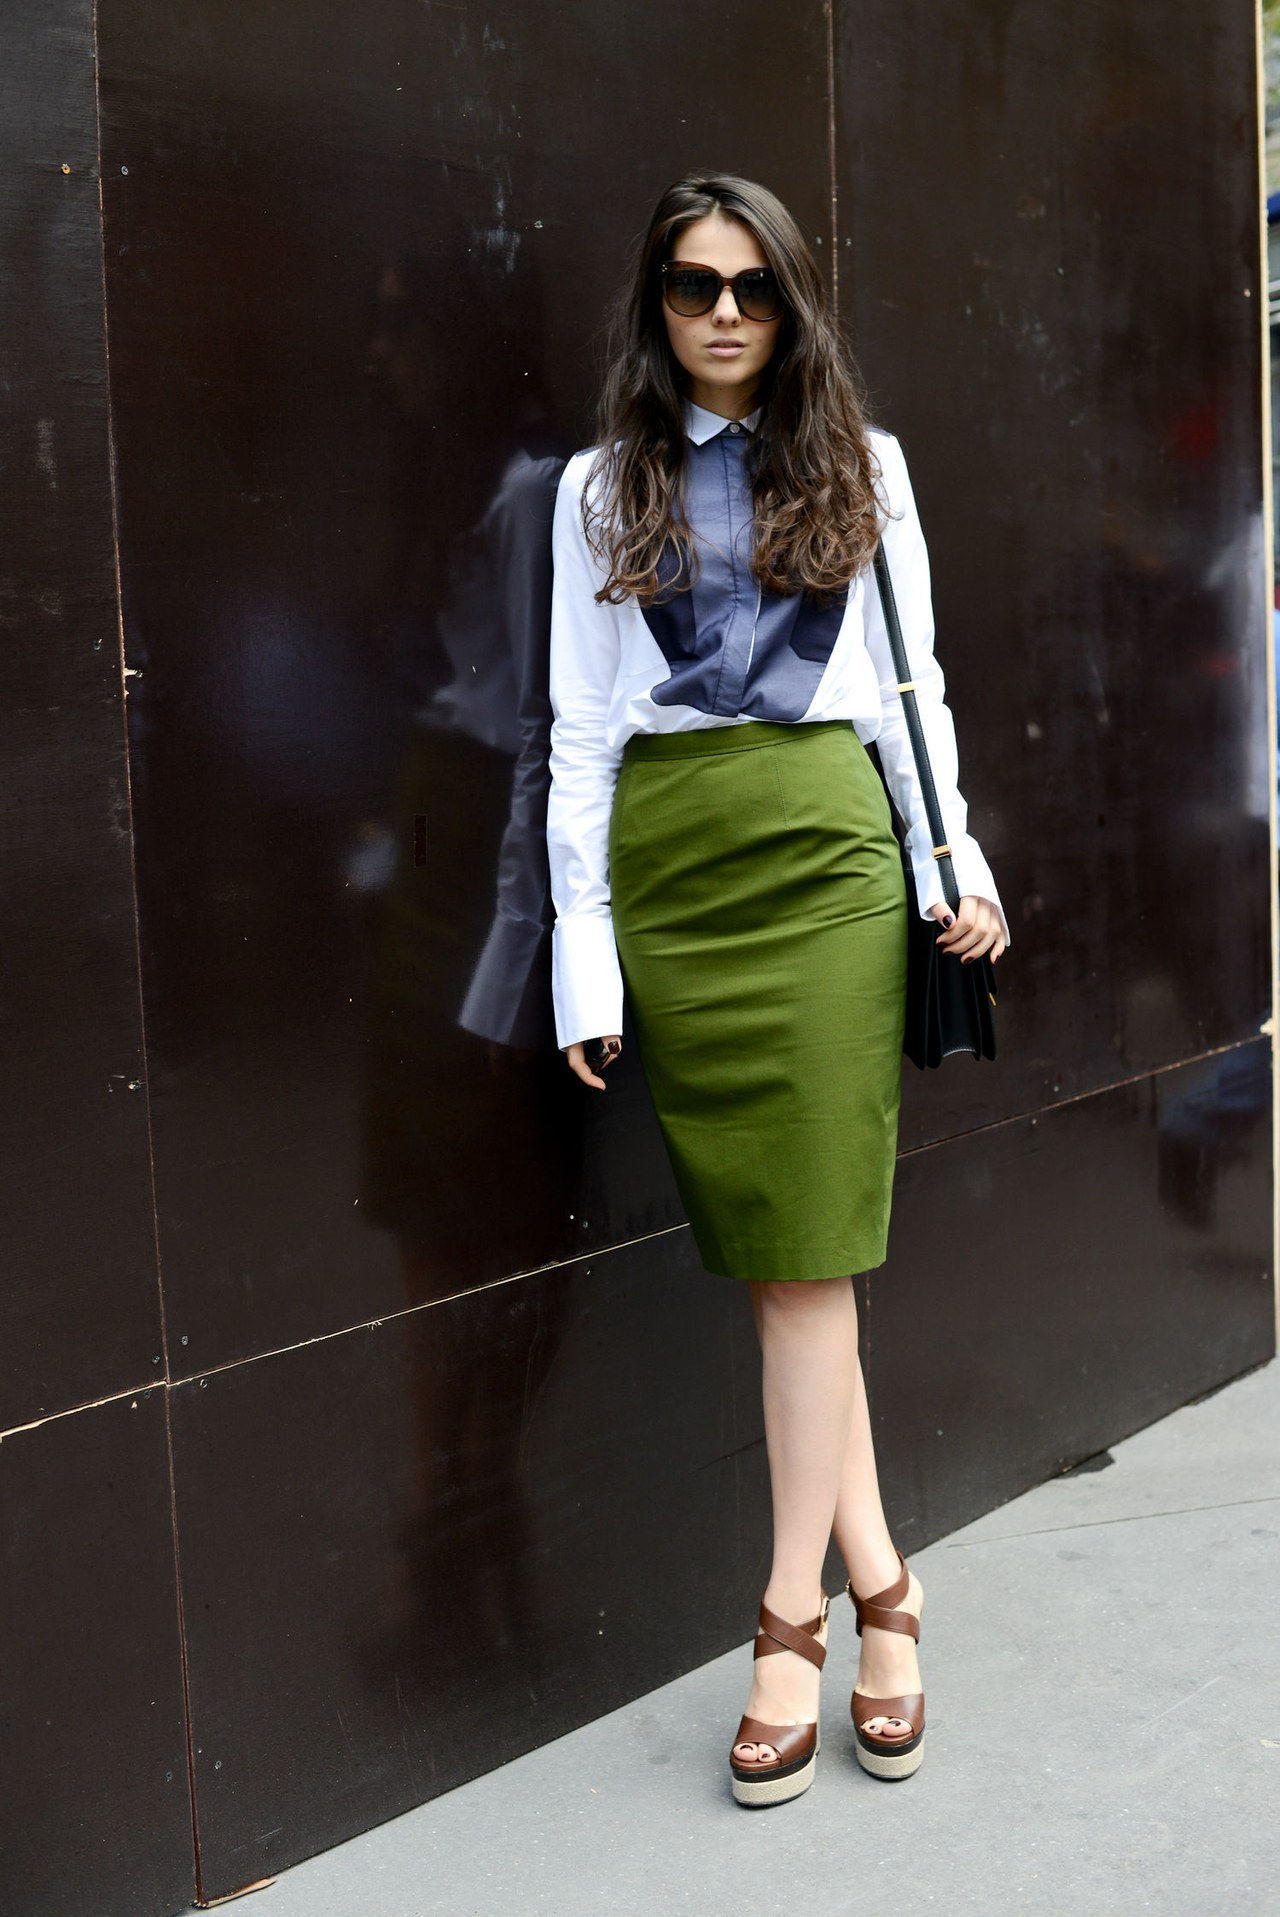 ΕΝΑ Green Pencil Skirt, a Blue Bib-Front Shirt, and Brown Sandals